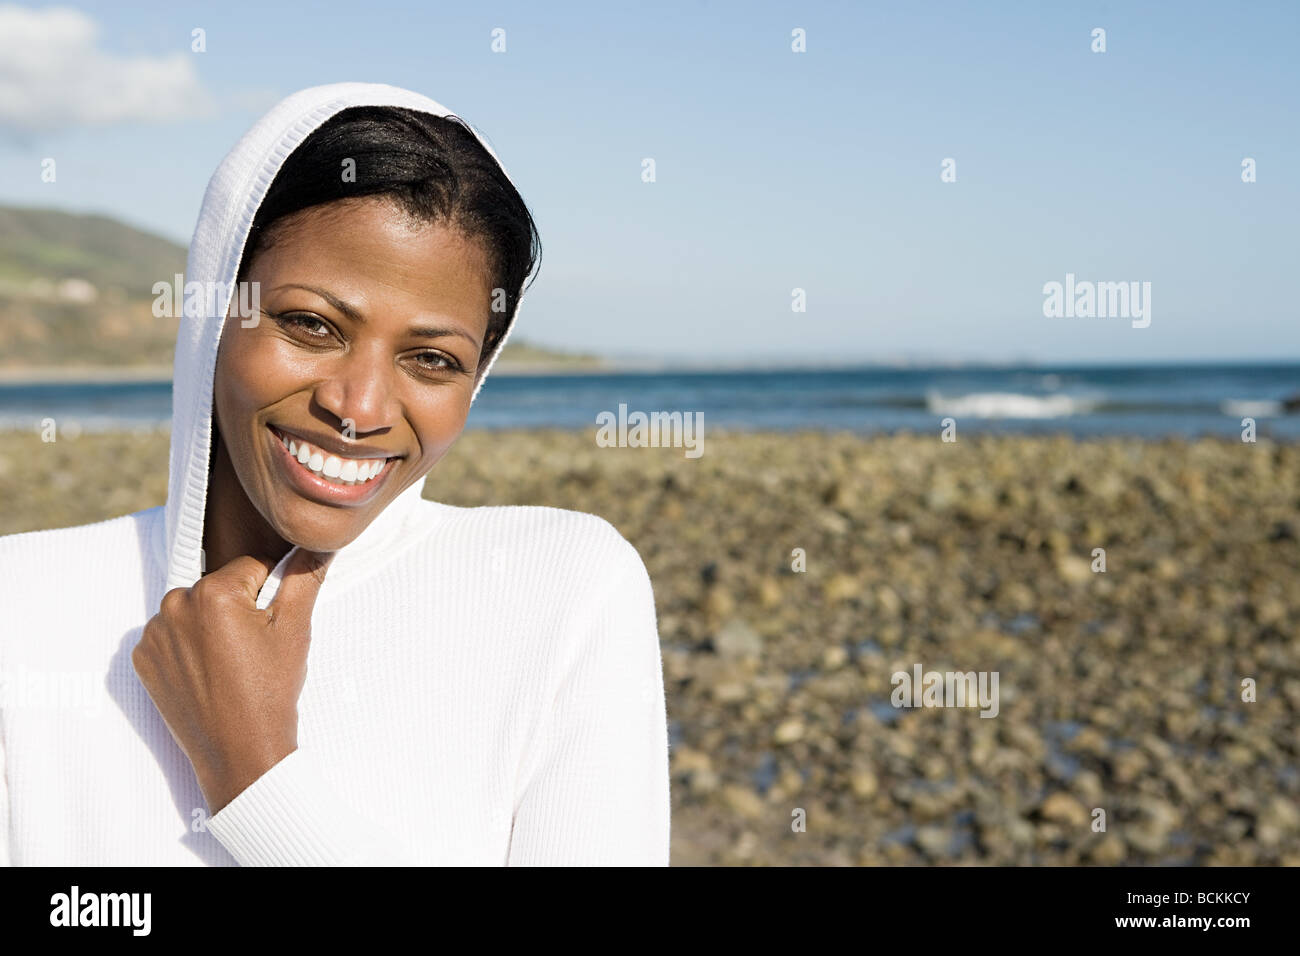 Smiling woman on a shingle beach - Stock Image